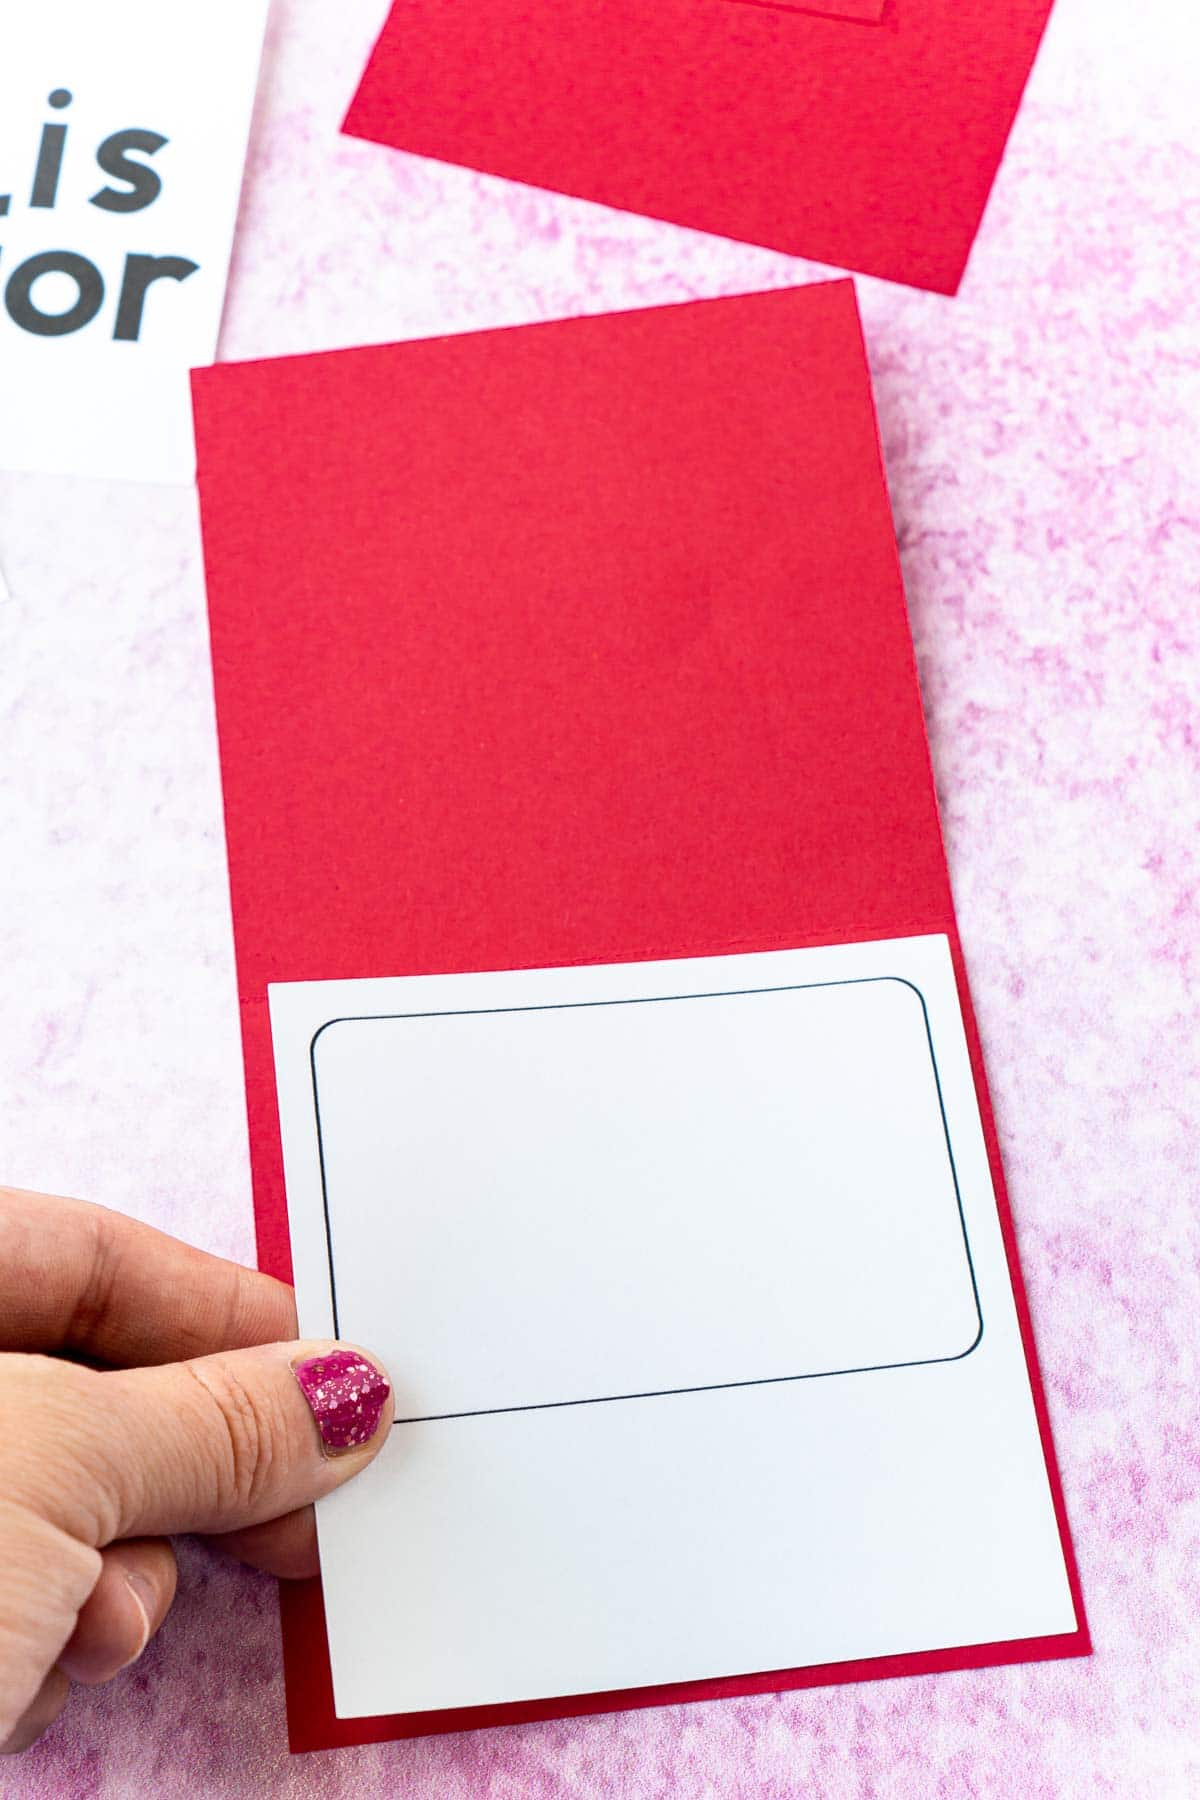 Woman's hand adding a gift card holder to a red card